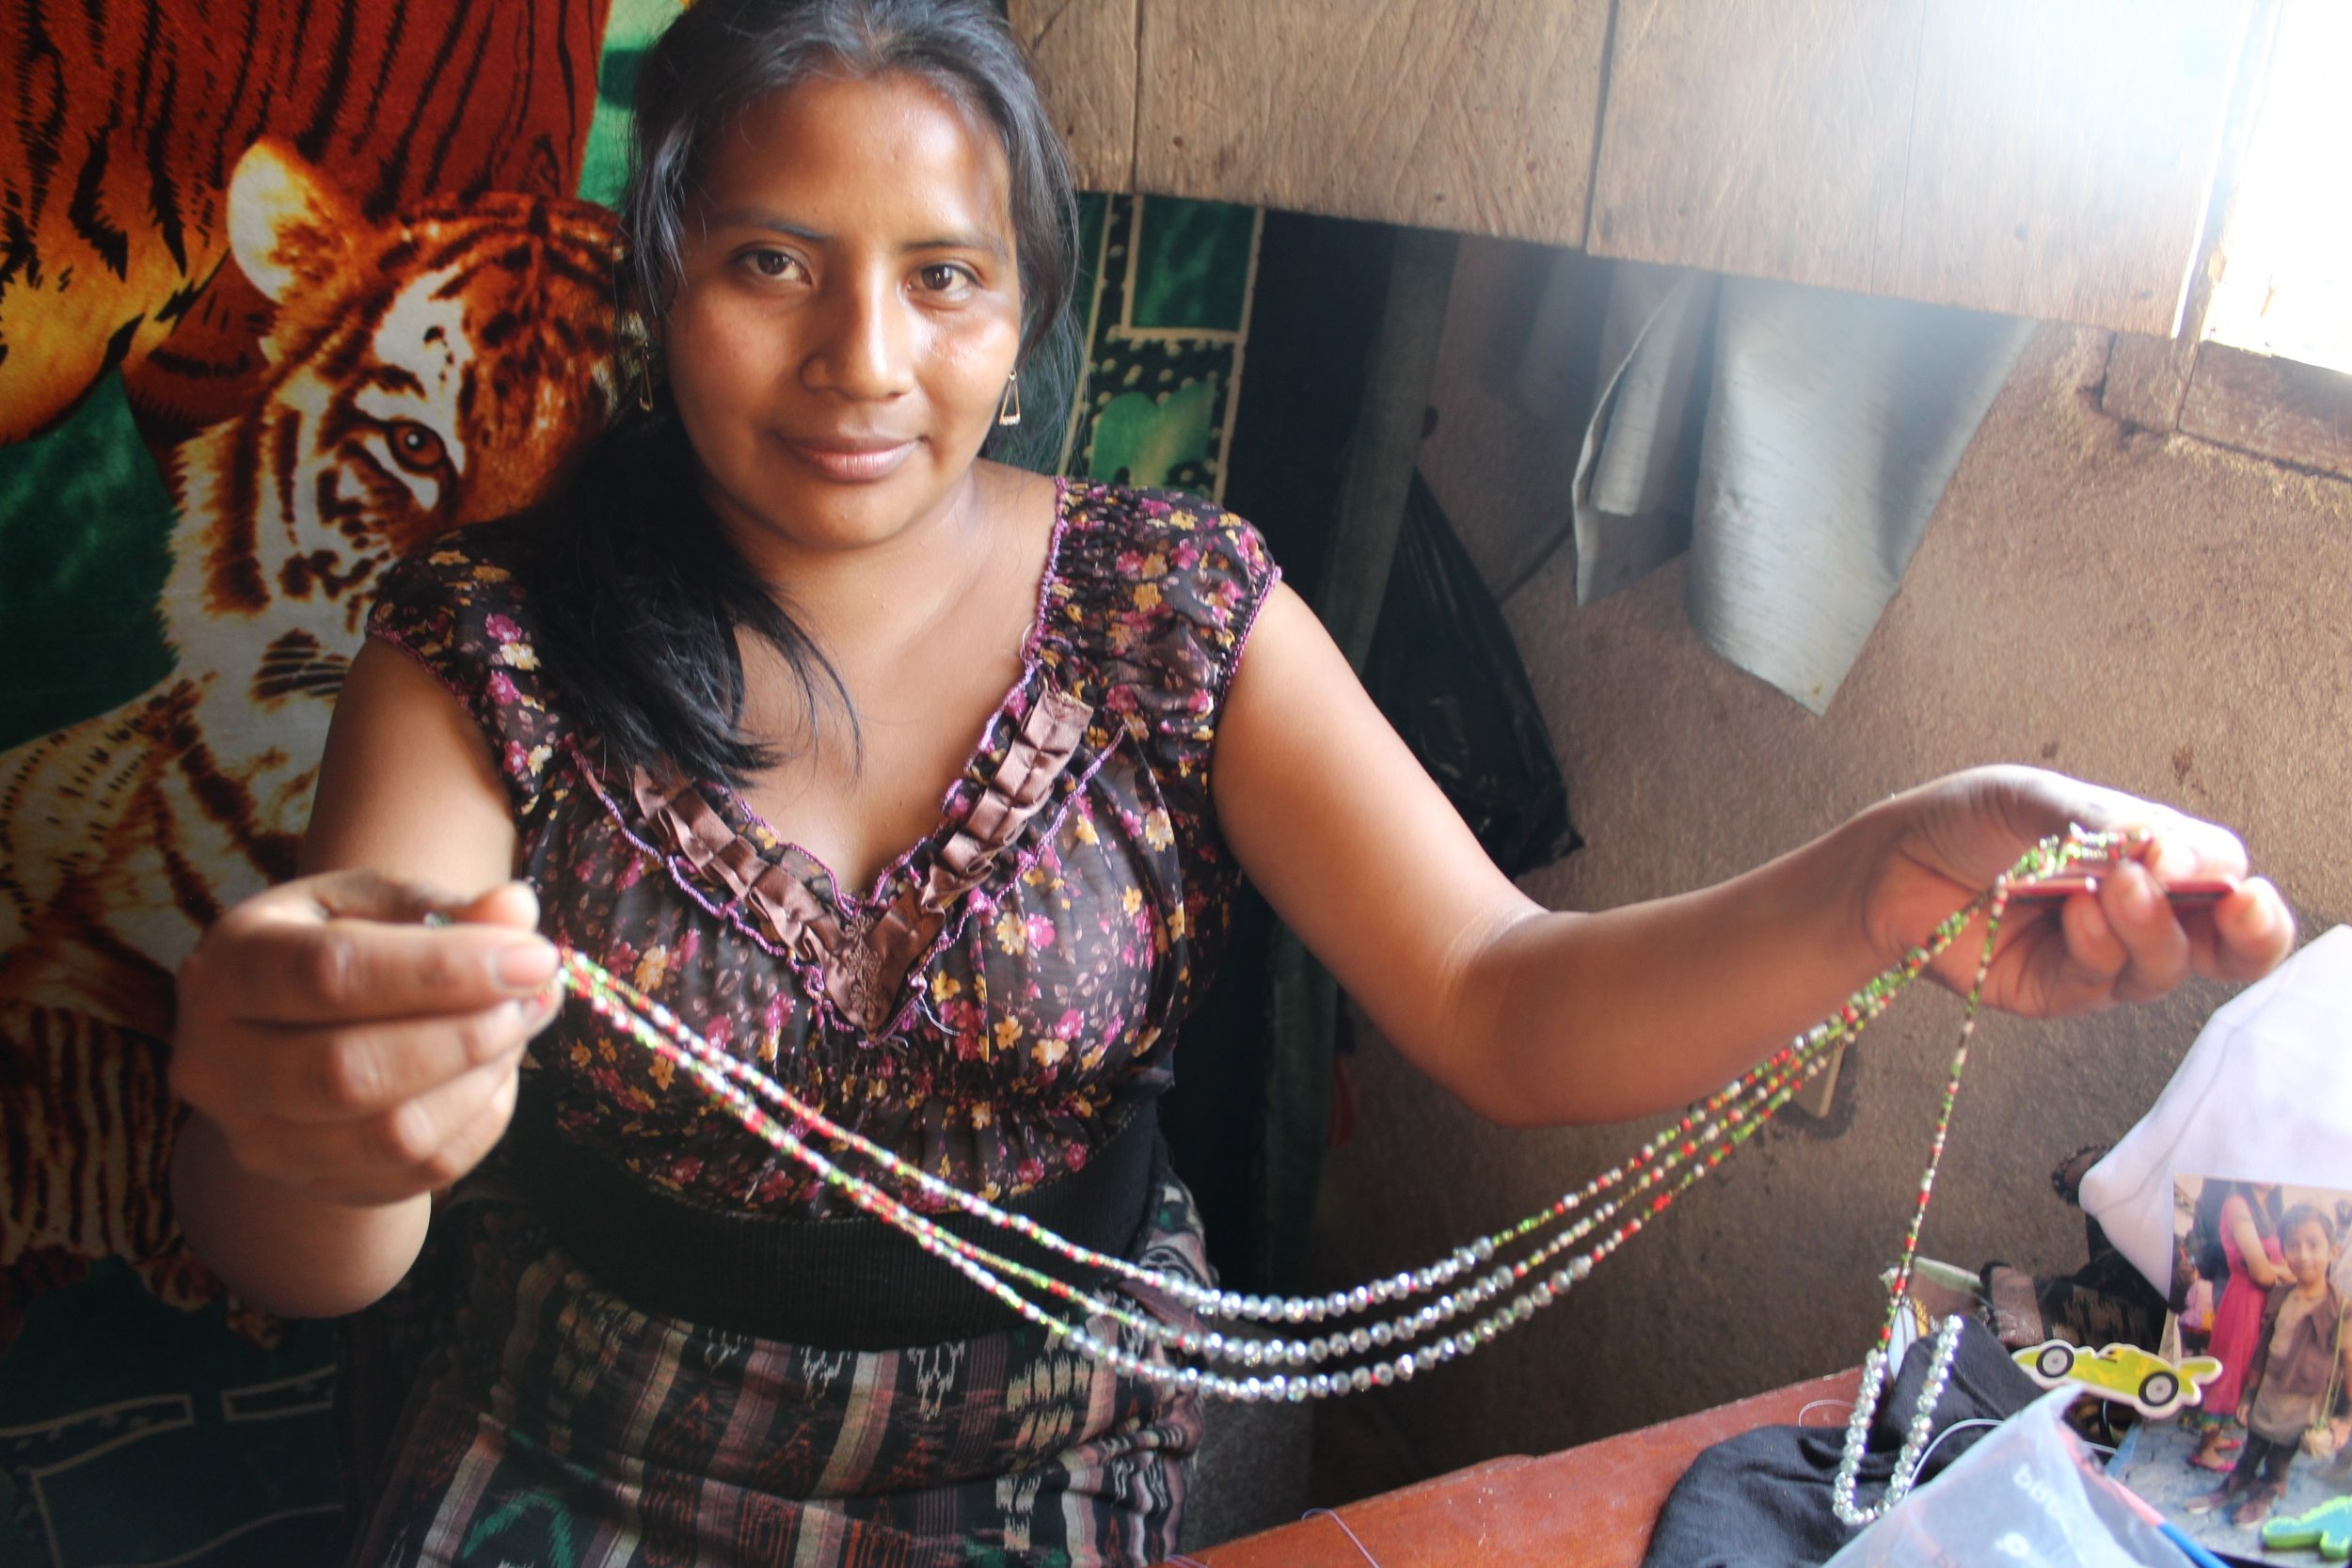 Mirian Zet - San Jorge La Laguna - Friendship Bridge's client for 9 loan cycles.Mirian has contributed not only this festive ball ornament cover, but also our corte christmas tree ornament, stunning earrings, necklaces, and a bookmark to our collection. Many ladies in Mirian's town are skilled bead artisans, and Mirian is no exception. Her persistence to create unique new products makes her a key participant of our Artisan Program. She has nine employees.